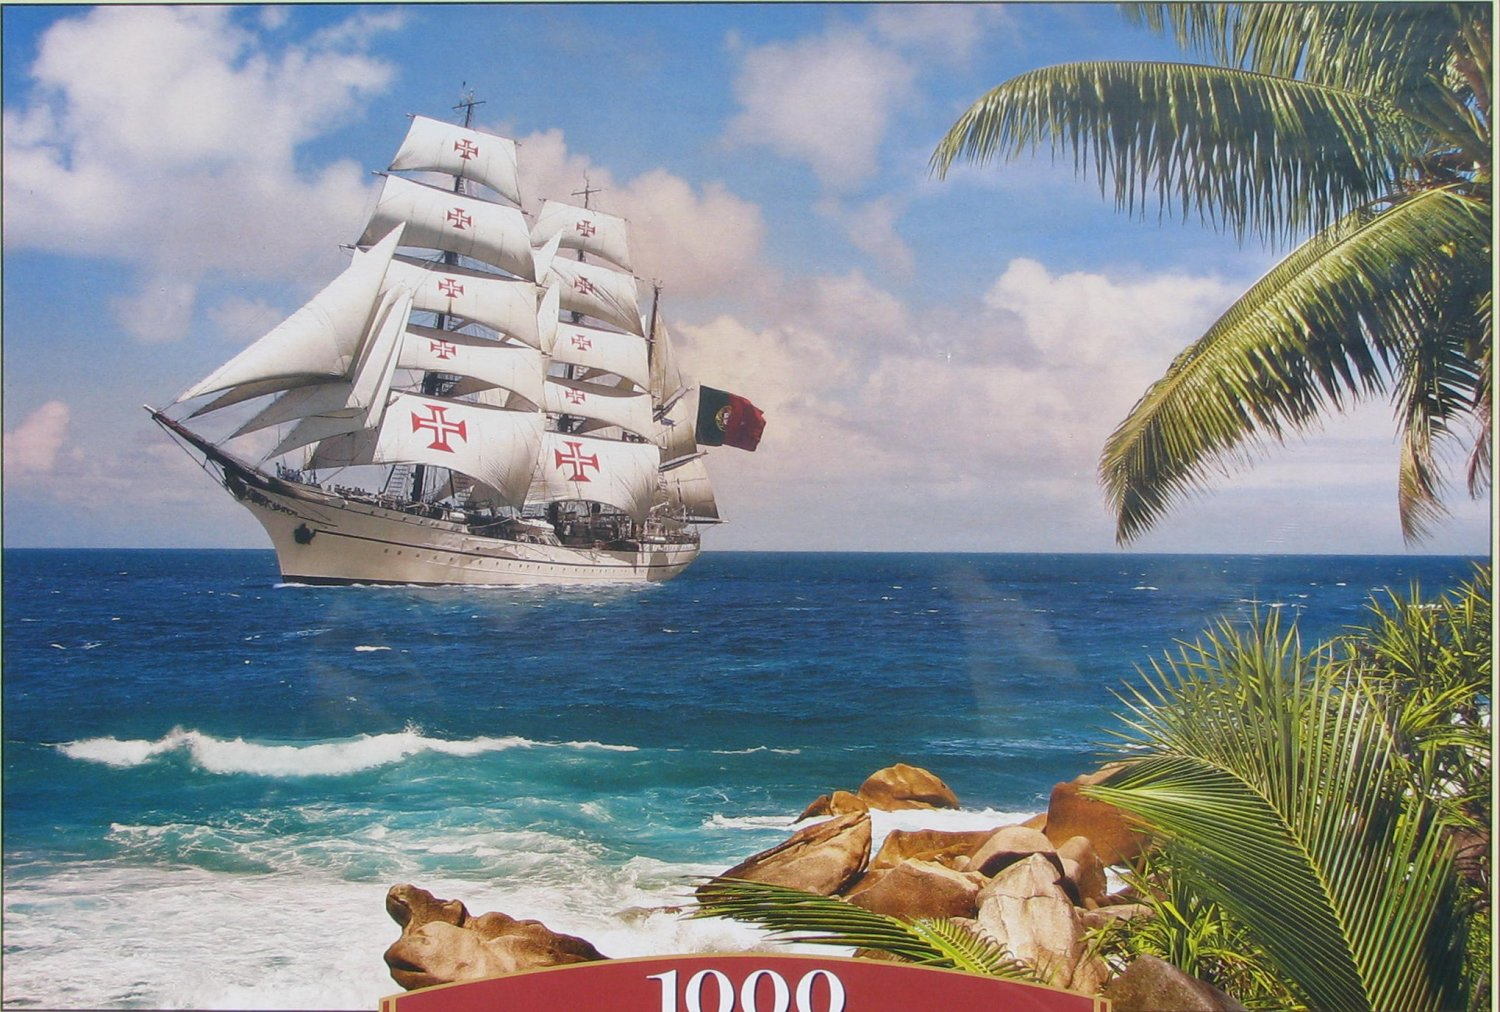 Castorland SAILING IN THE TROPICS 1000 pc Jigsaw Puzzle